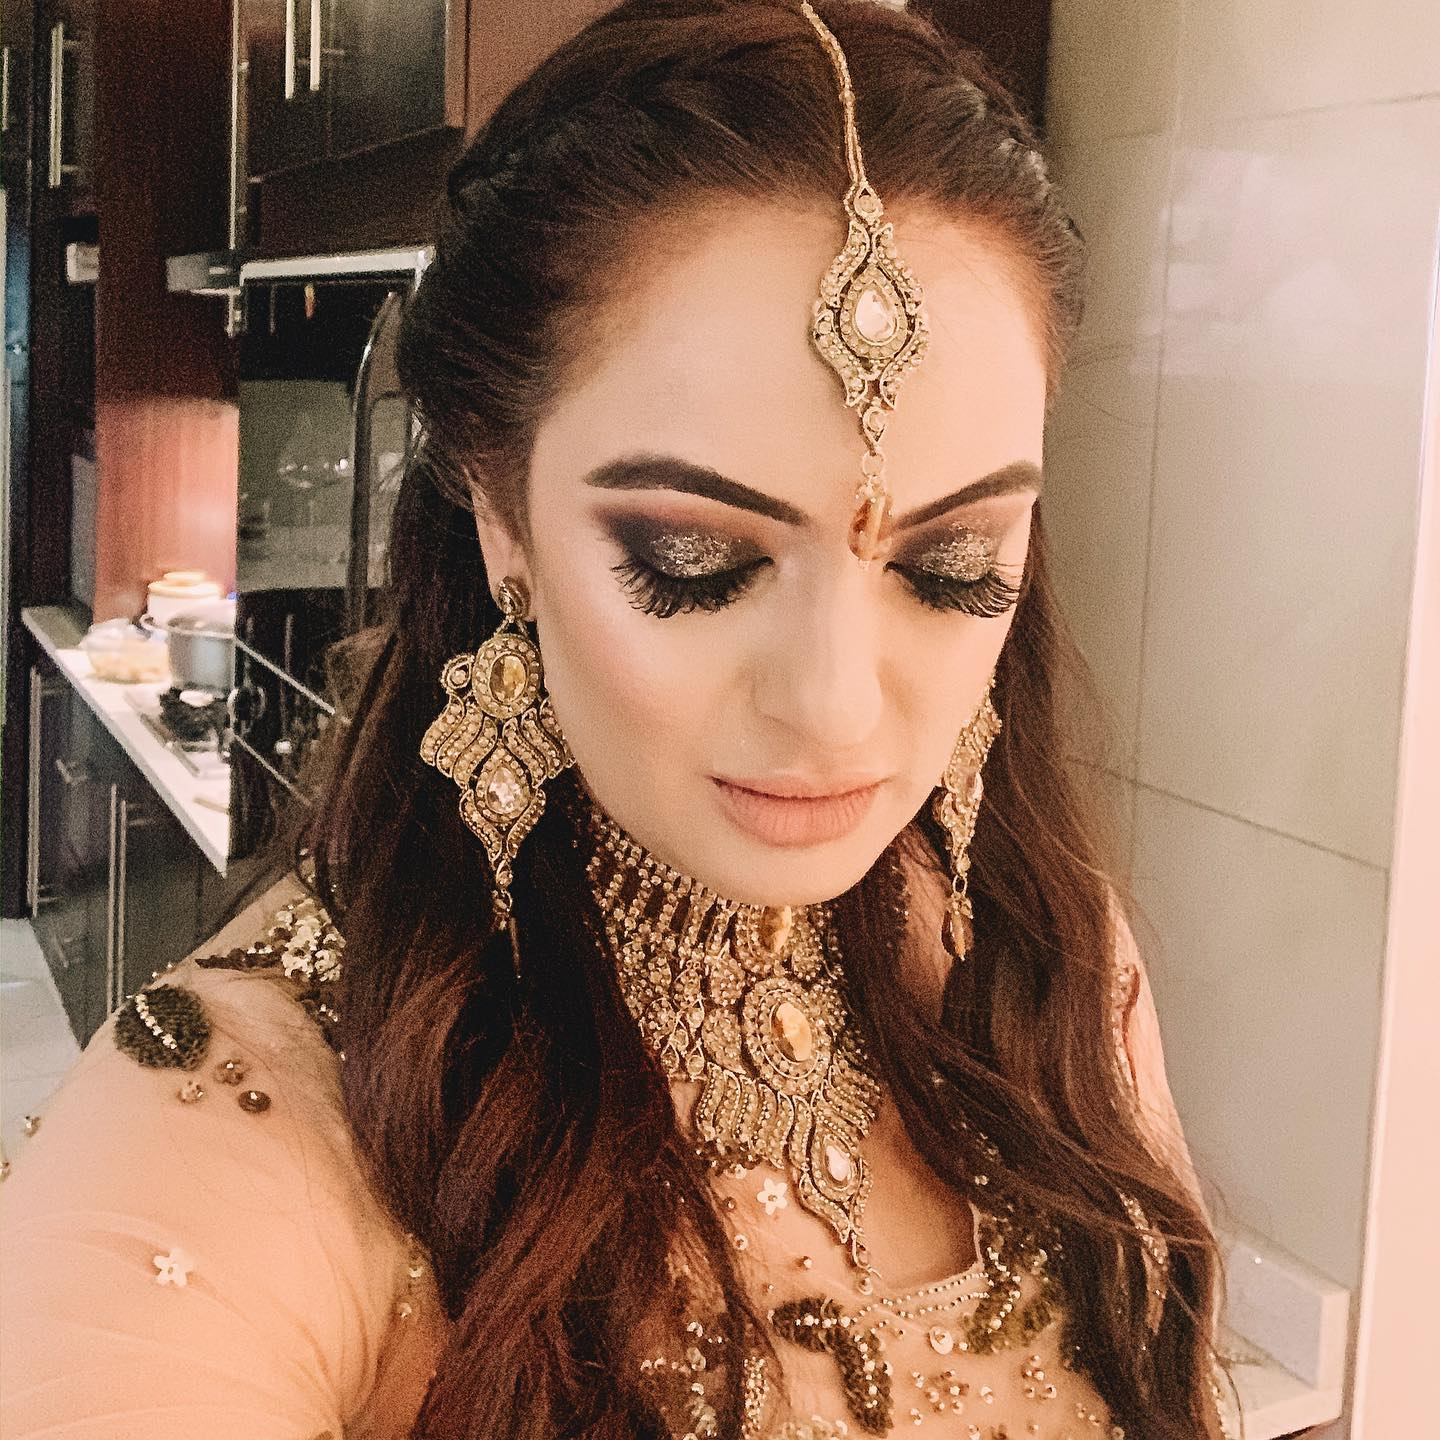 Tu Aise Zor Se Naachi Aaj -  Ke Ghungroo Toot Gaye ... ️ . . . Subjected to my selfies until we get to see the professional pictures by @elanaschilz